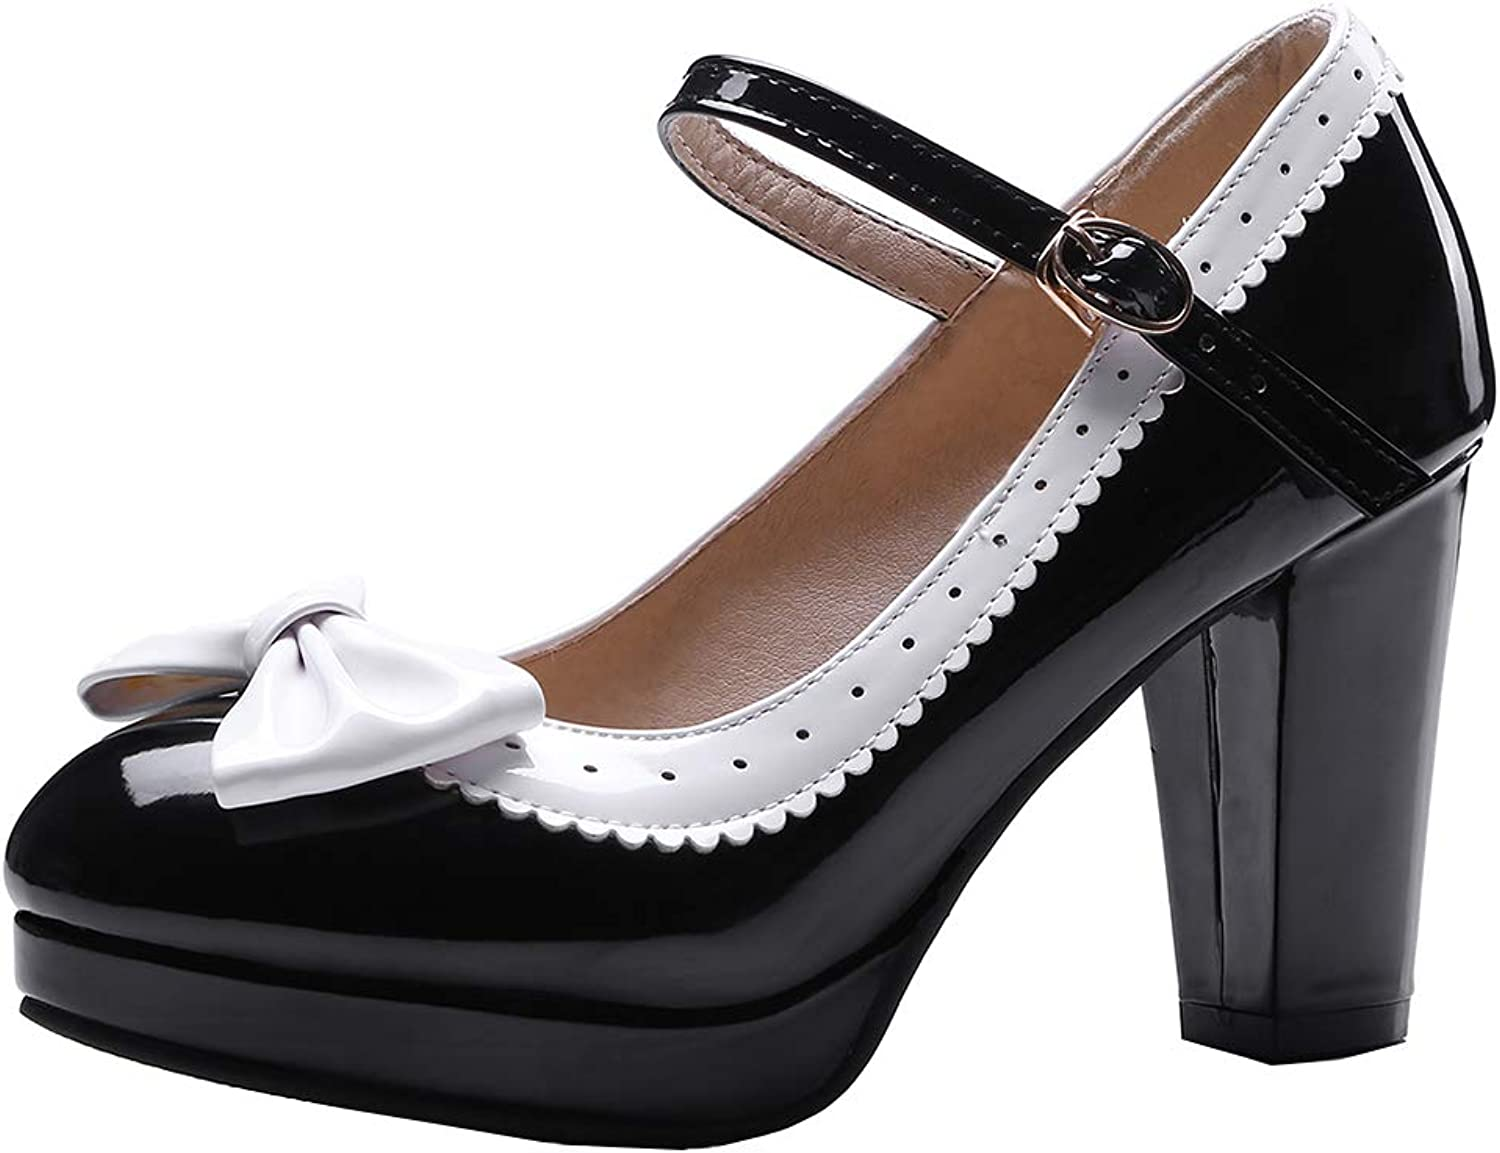 XDLEX Women's Lolita Sweet Bowtie Bow Pumps Ankle Strap Wedges Vintage Perforated Mary Janes Cute Buckle Patent Leather Gothic Court shoes High Block Heel